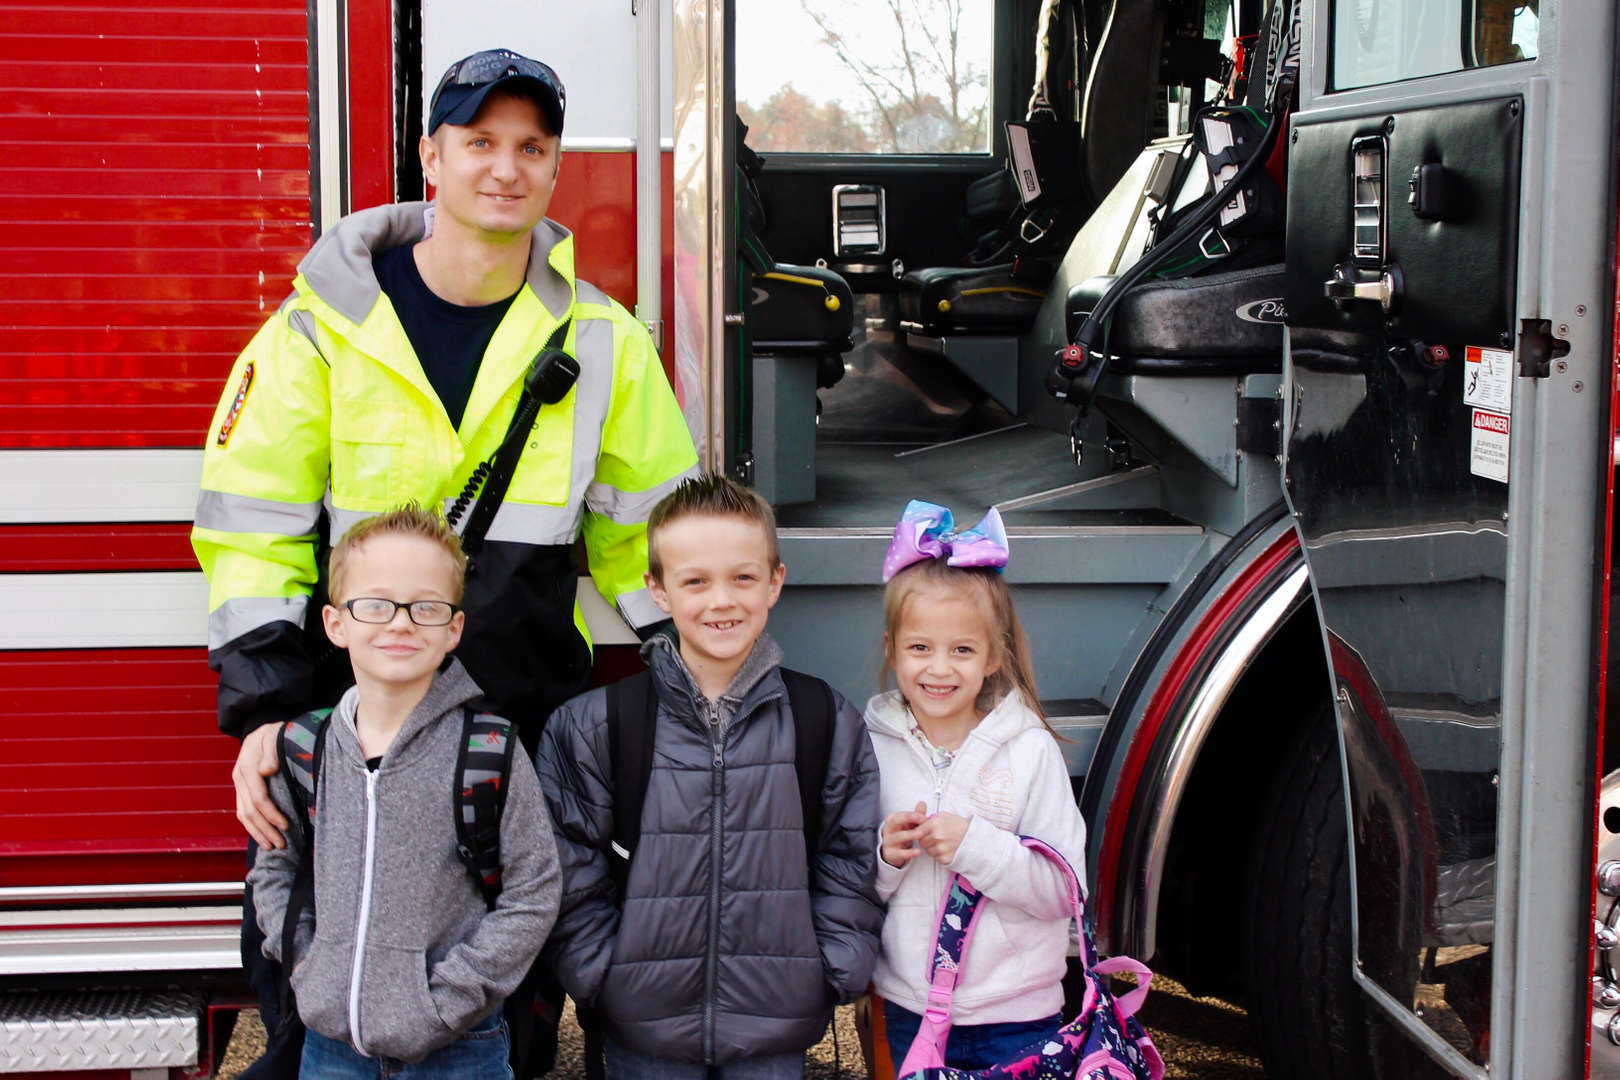 Students win a Fire truck ride to school